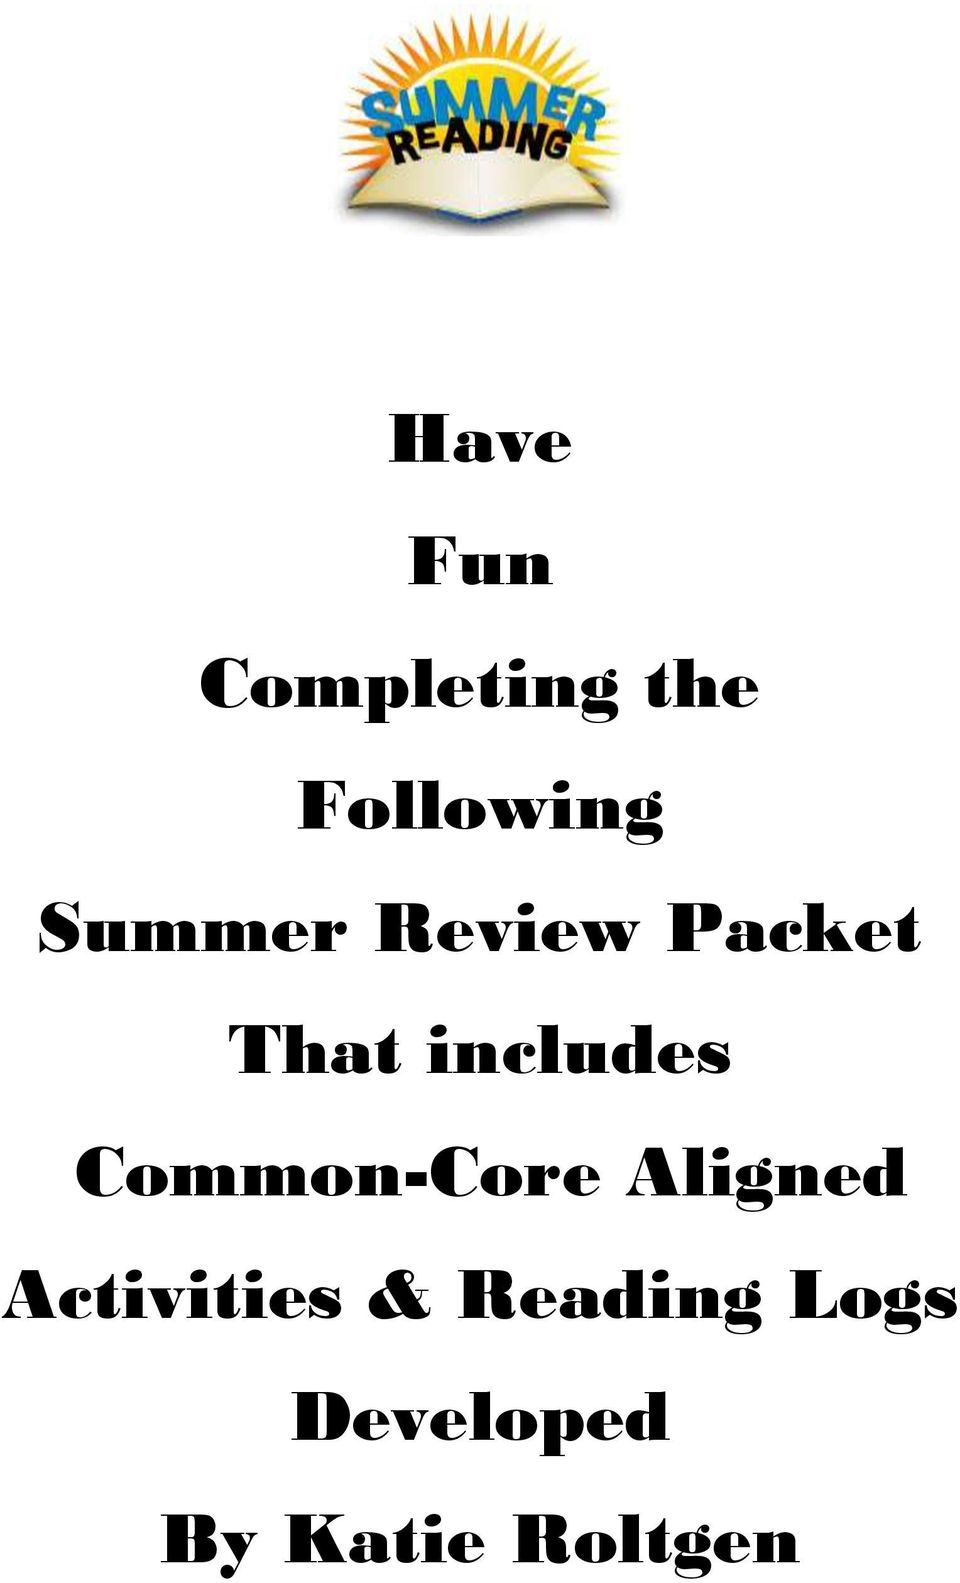 Common-Core Aligned Activities &